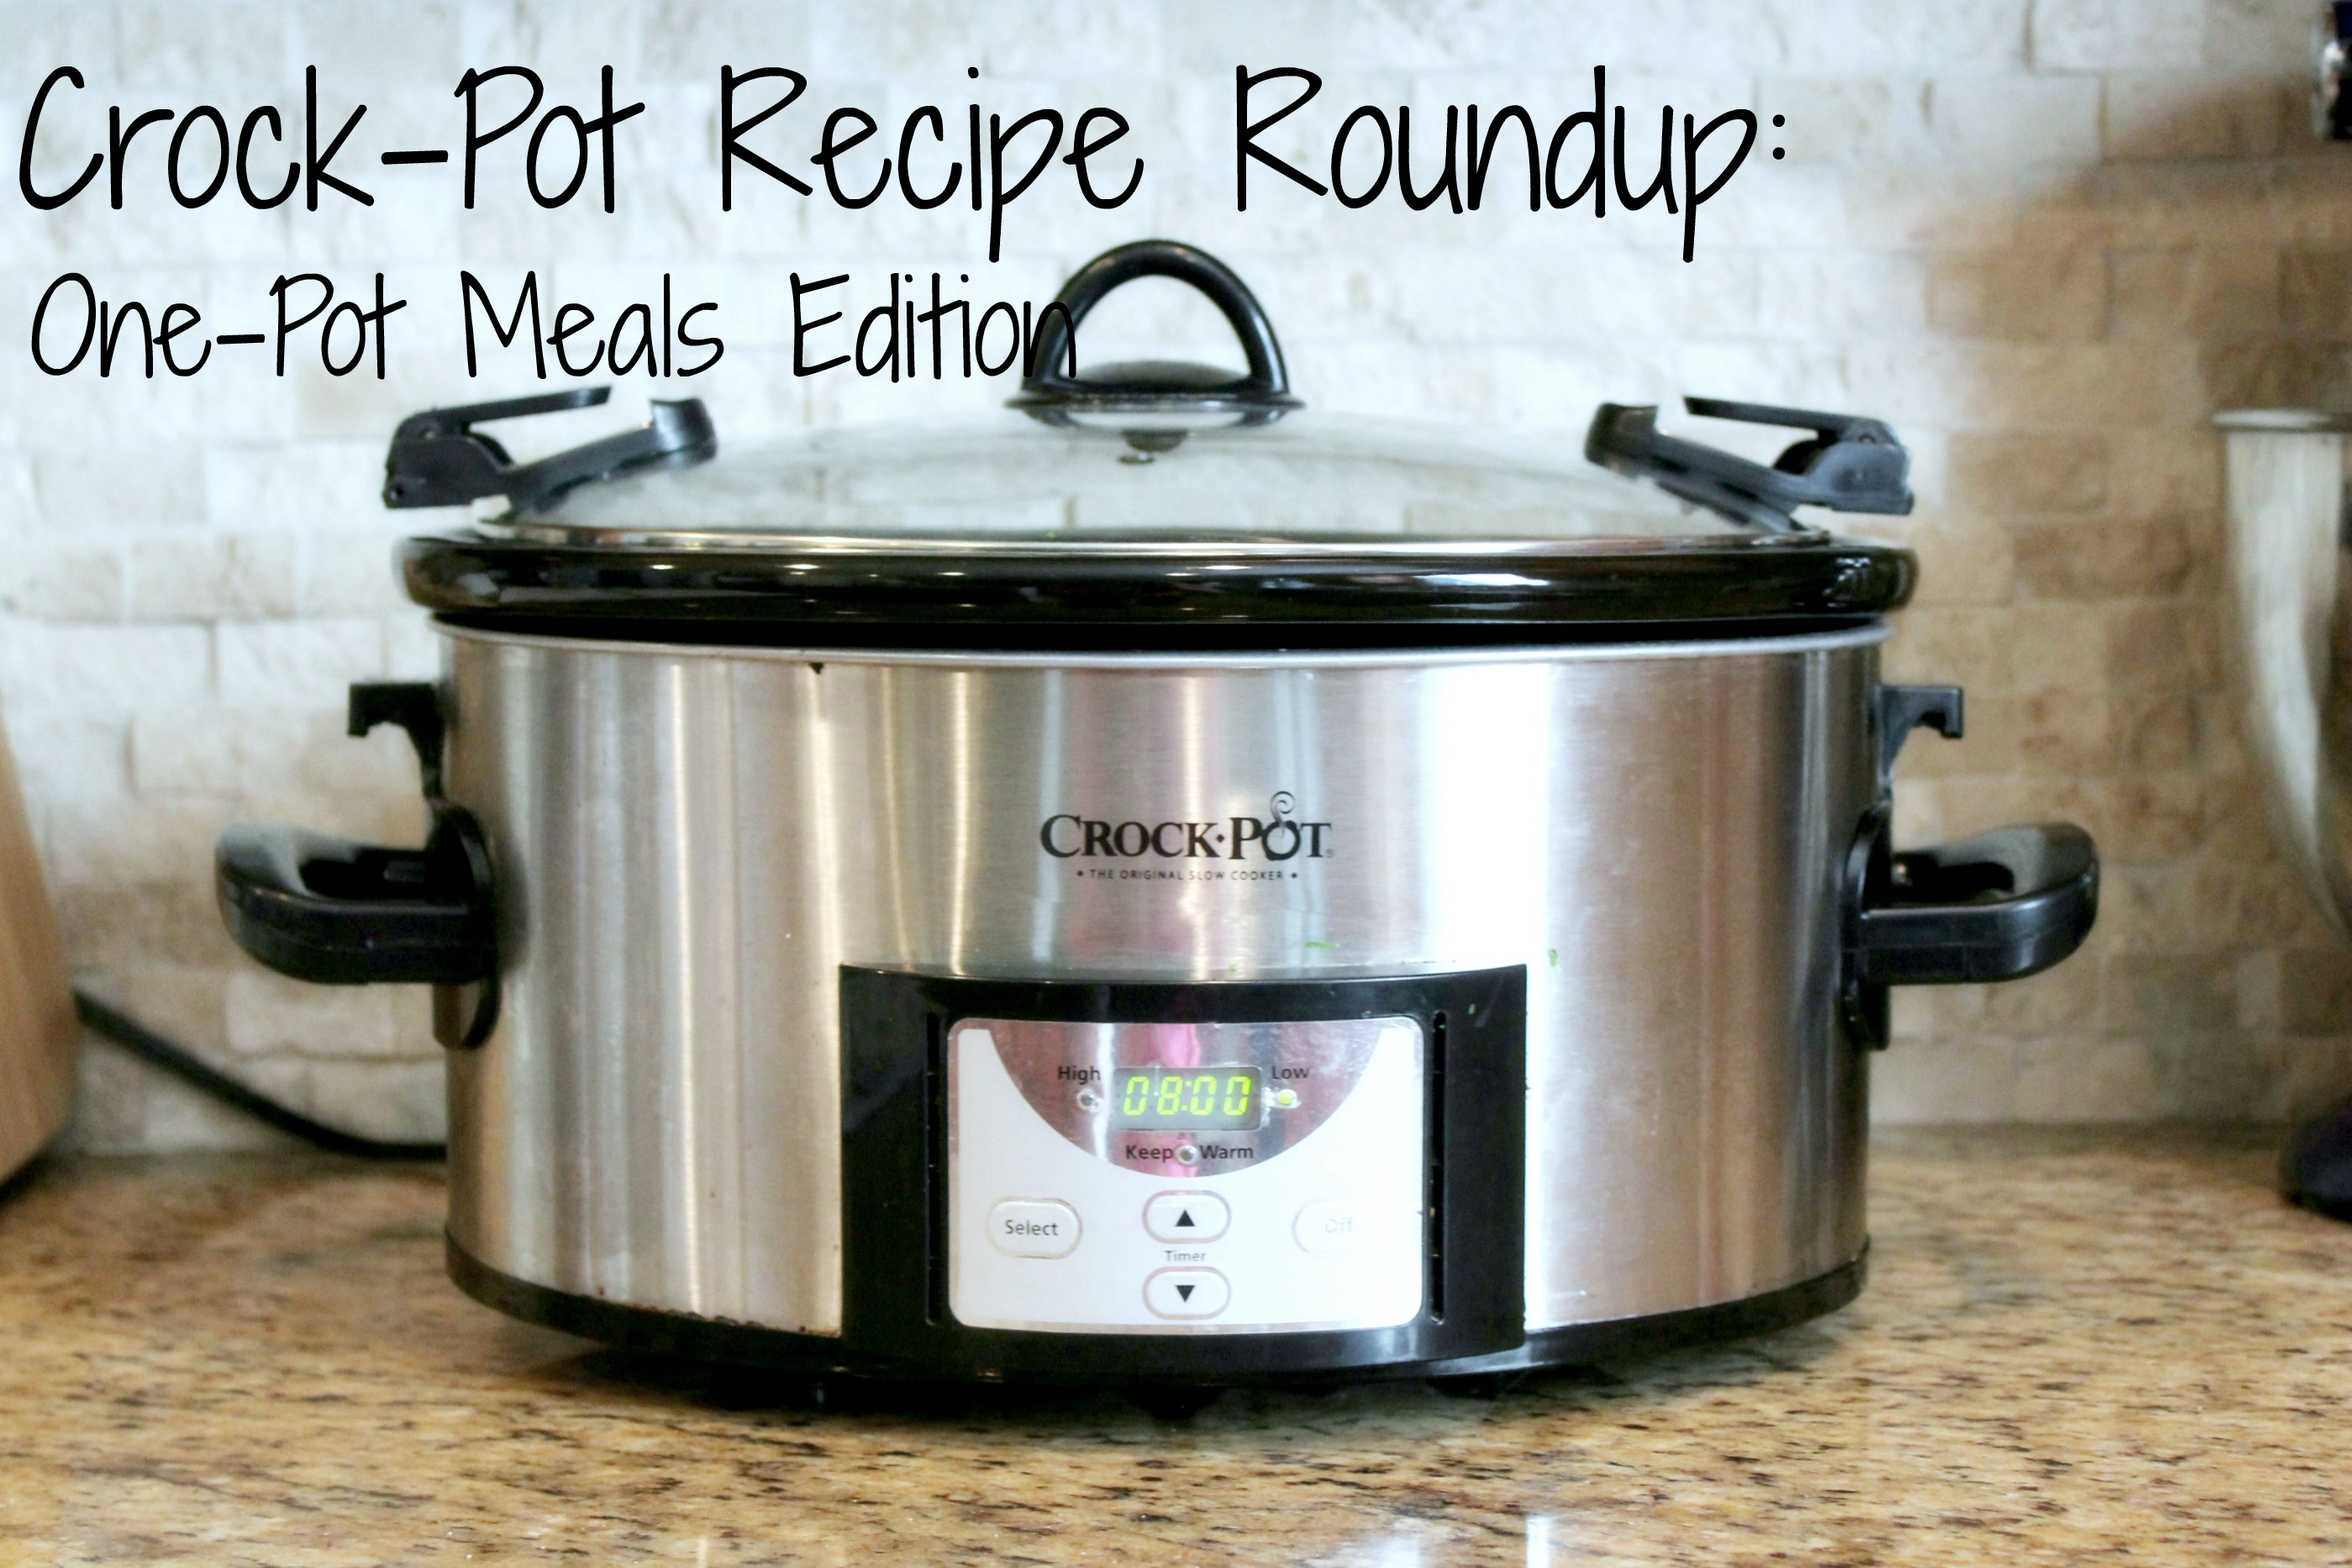 CrockPot Recipe Roundup: One Pot Meals Edition